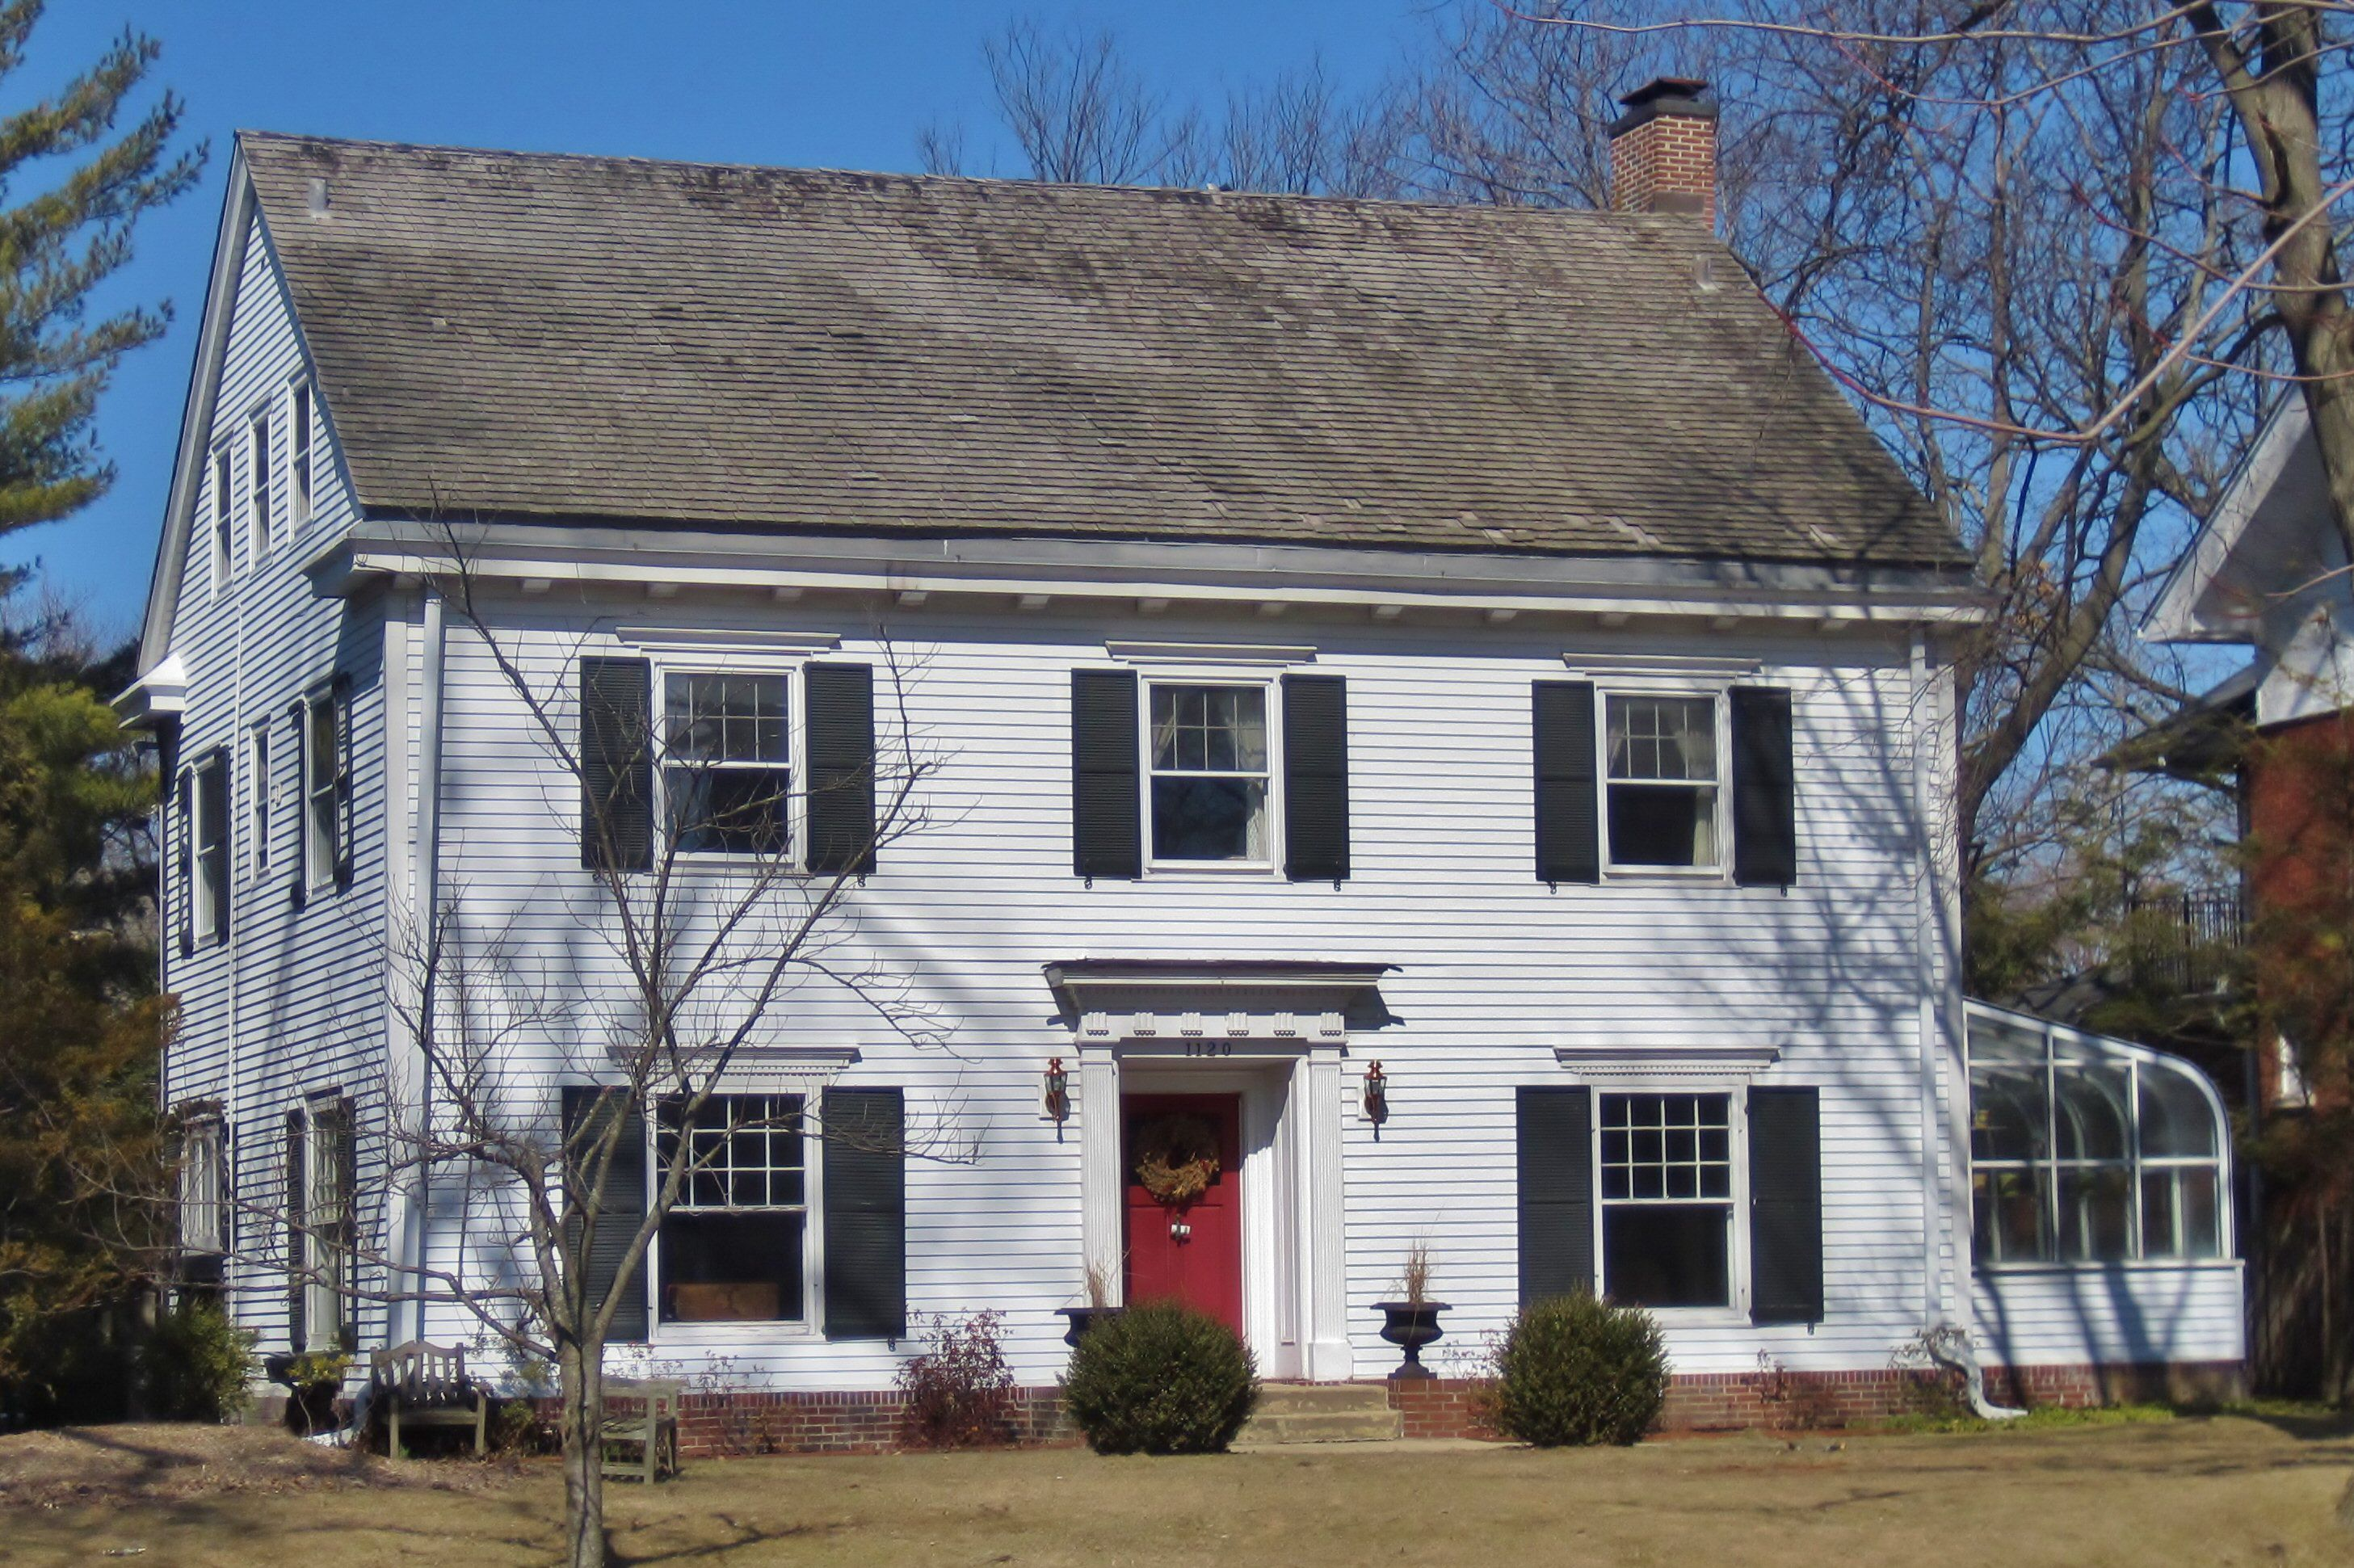 two story white house, 2 windows with black shutters on 2nd floor, 1 window on either side of red door